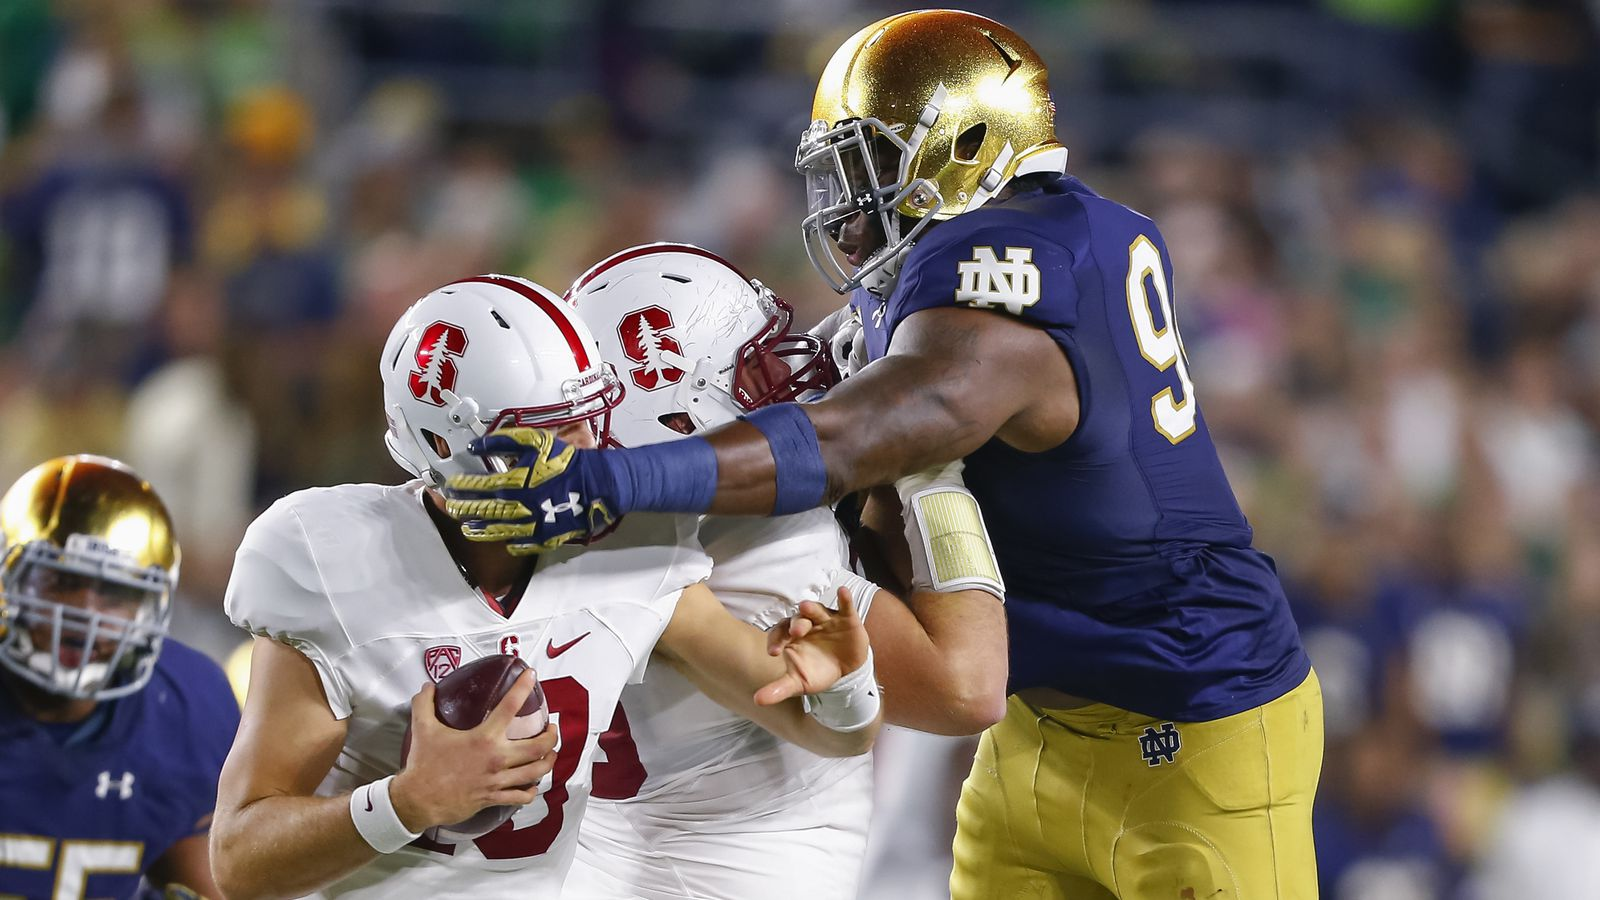 notre dame football game score yahoo news sports